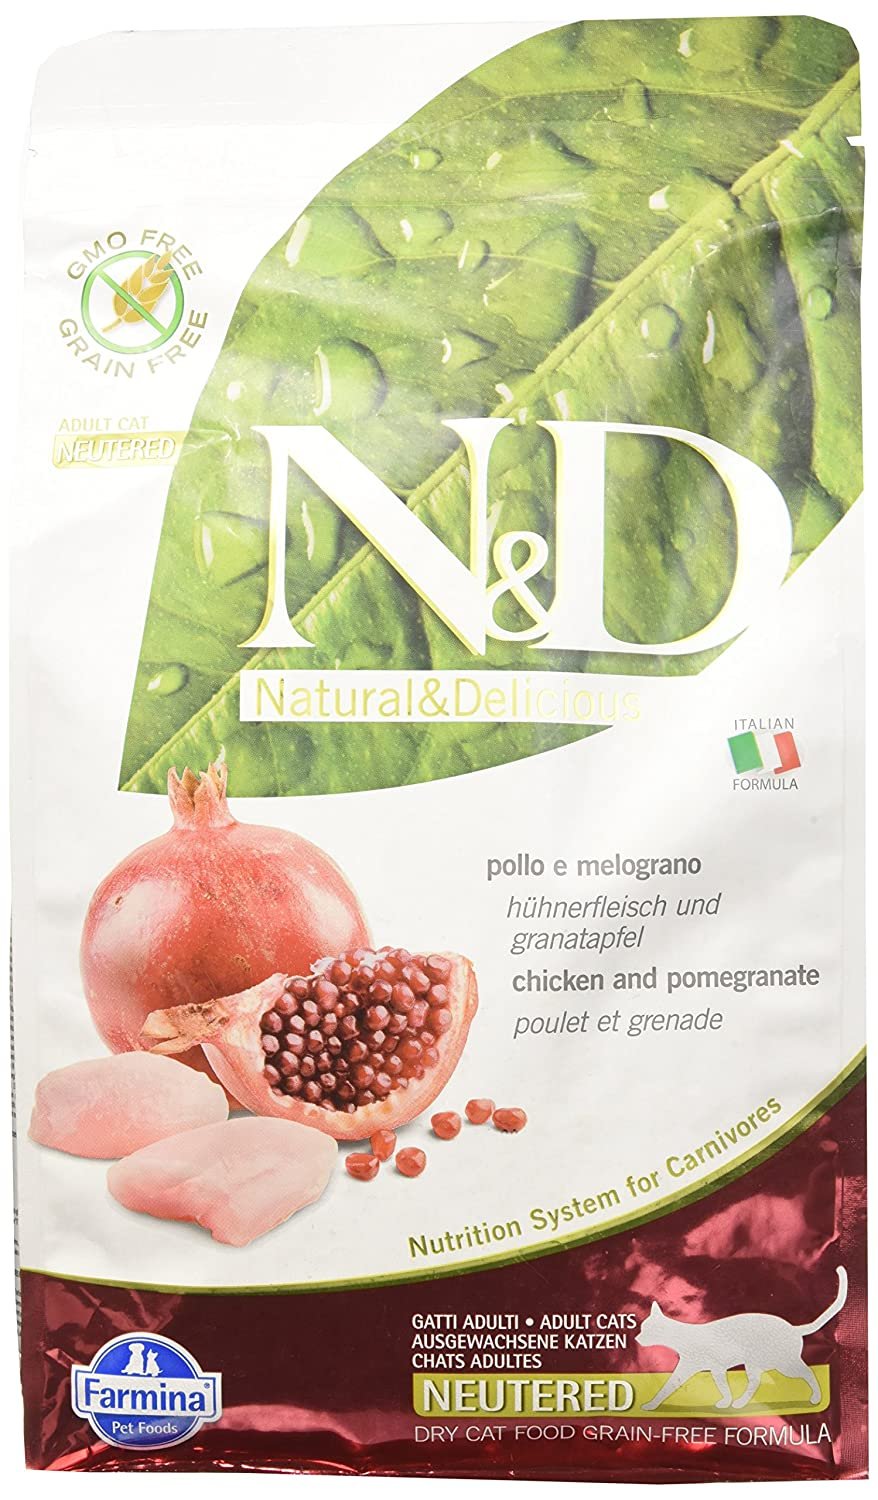 FARMINA - ndgr. ainfree Pol - Melogr.KG. 1,5 - Neutered: Amazon.es: Productos para mascotas